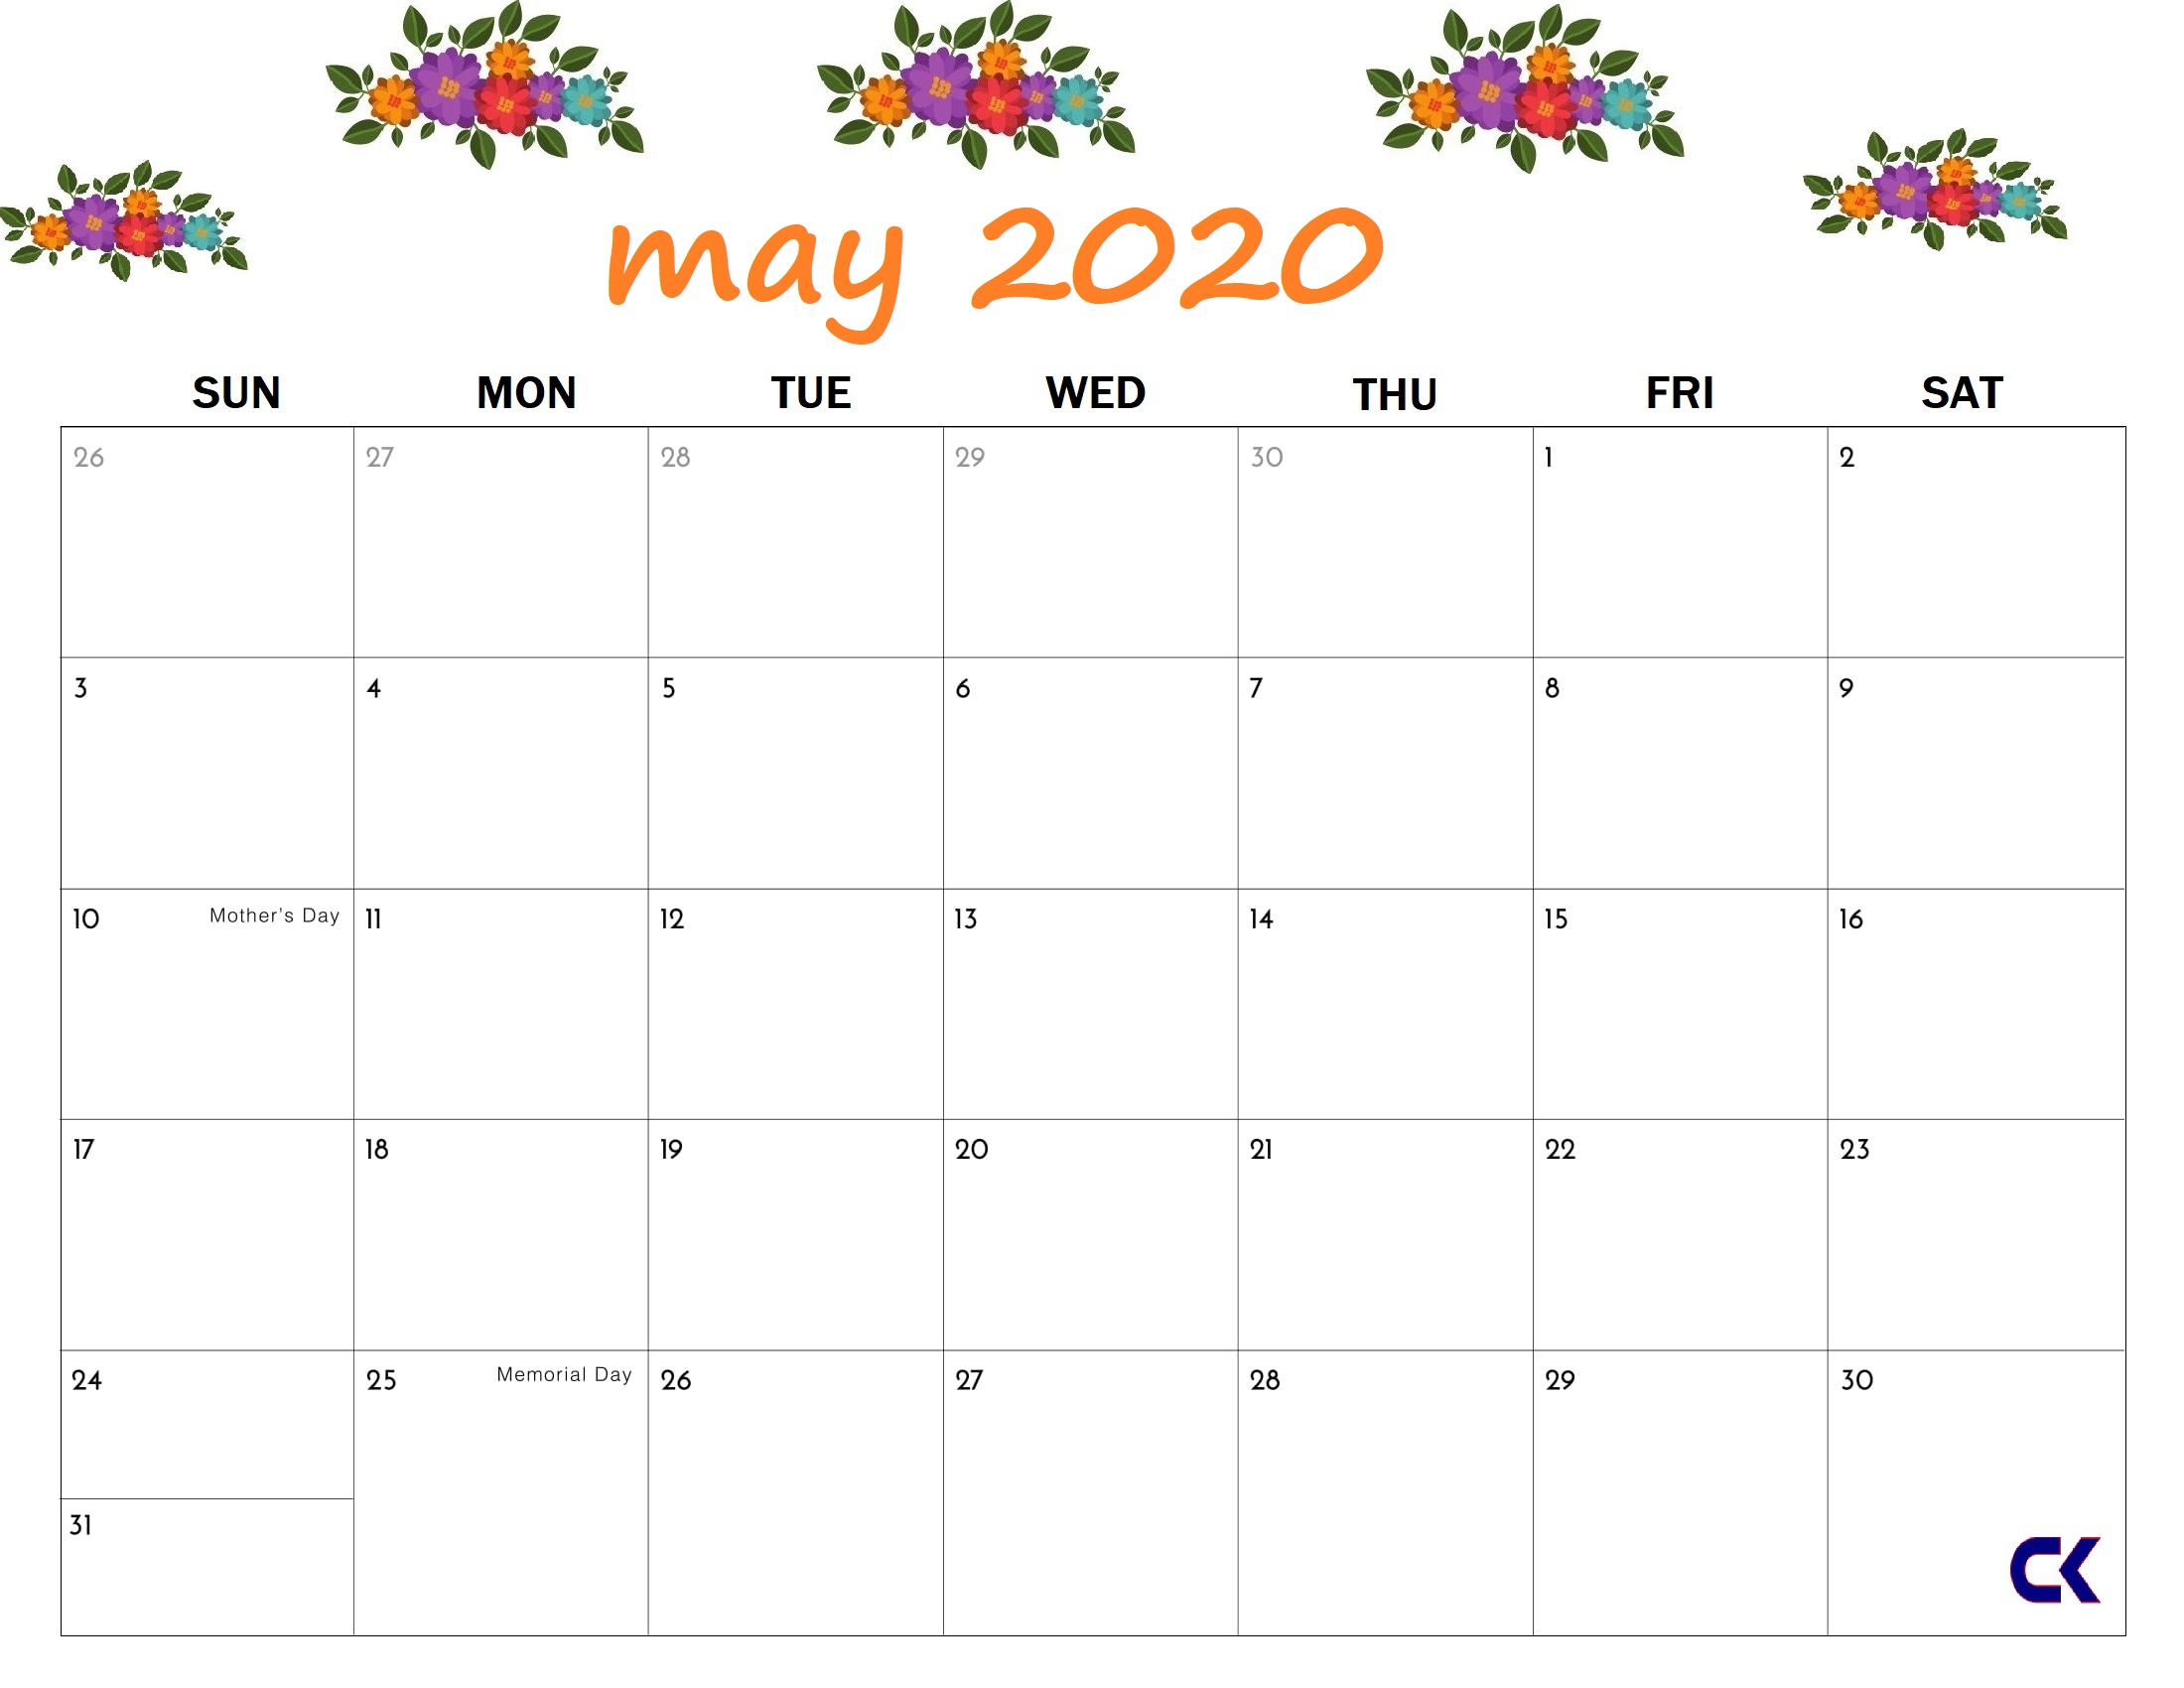 May 2020 Calendar. ⚡ April, May And June 2020 Calendar within Wincalendar July 2020